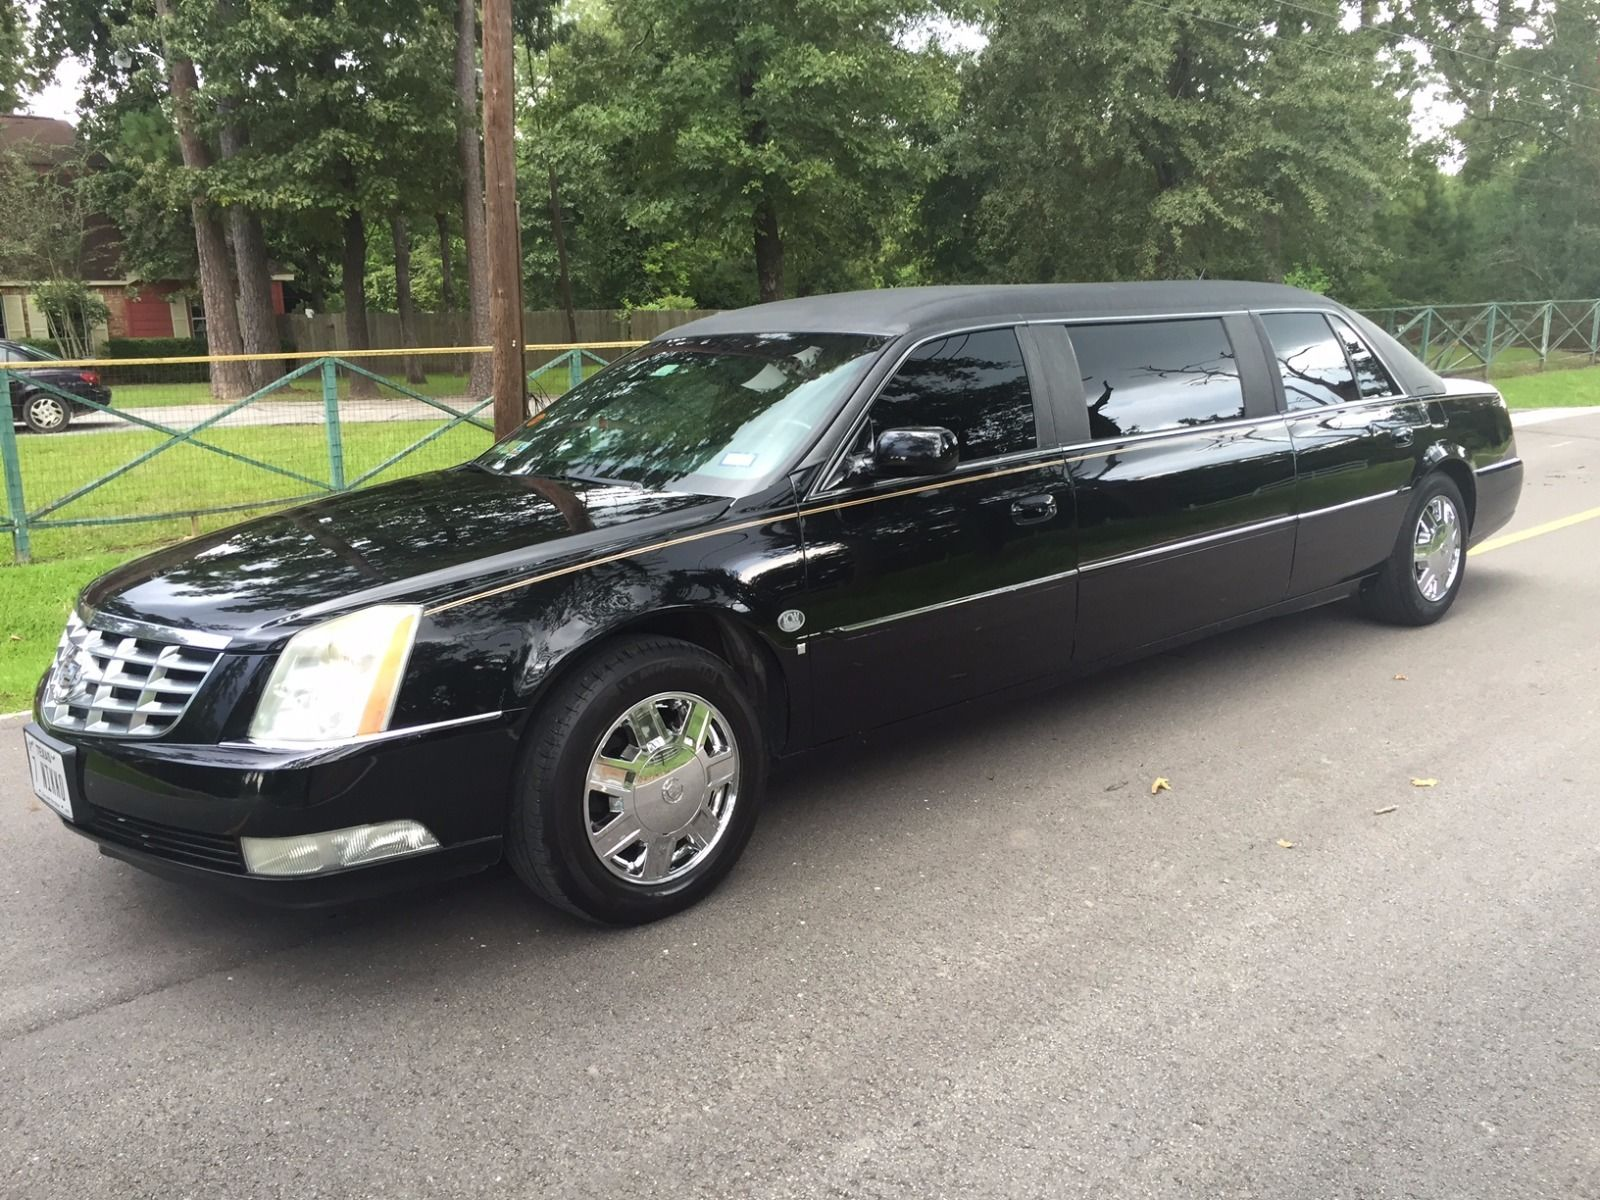 Limo For Sale >> Raised roof 2007 Cadillac Escalade limousine for sale